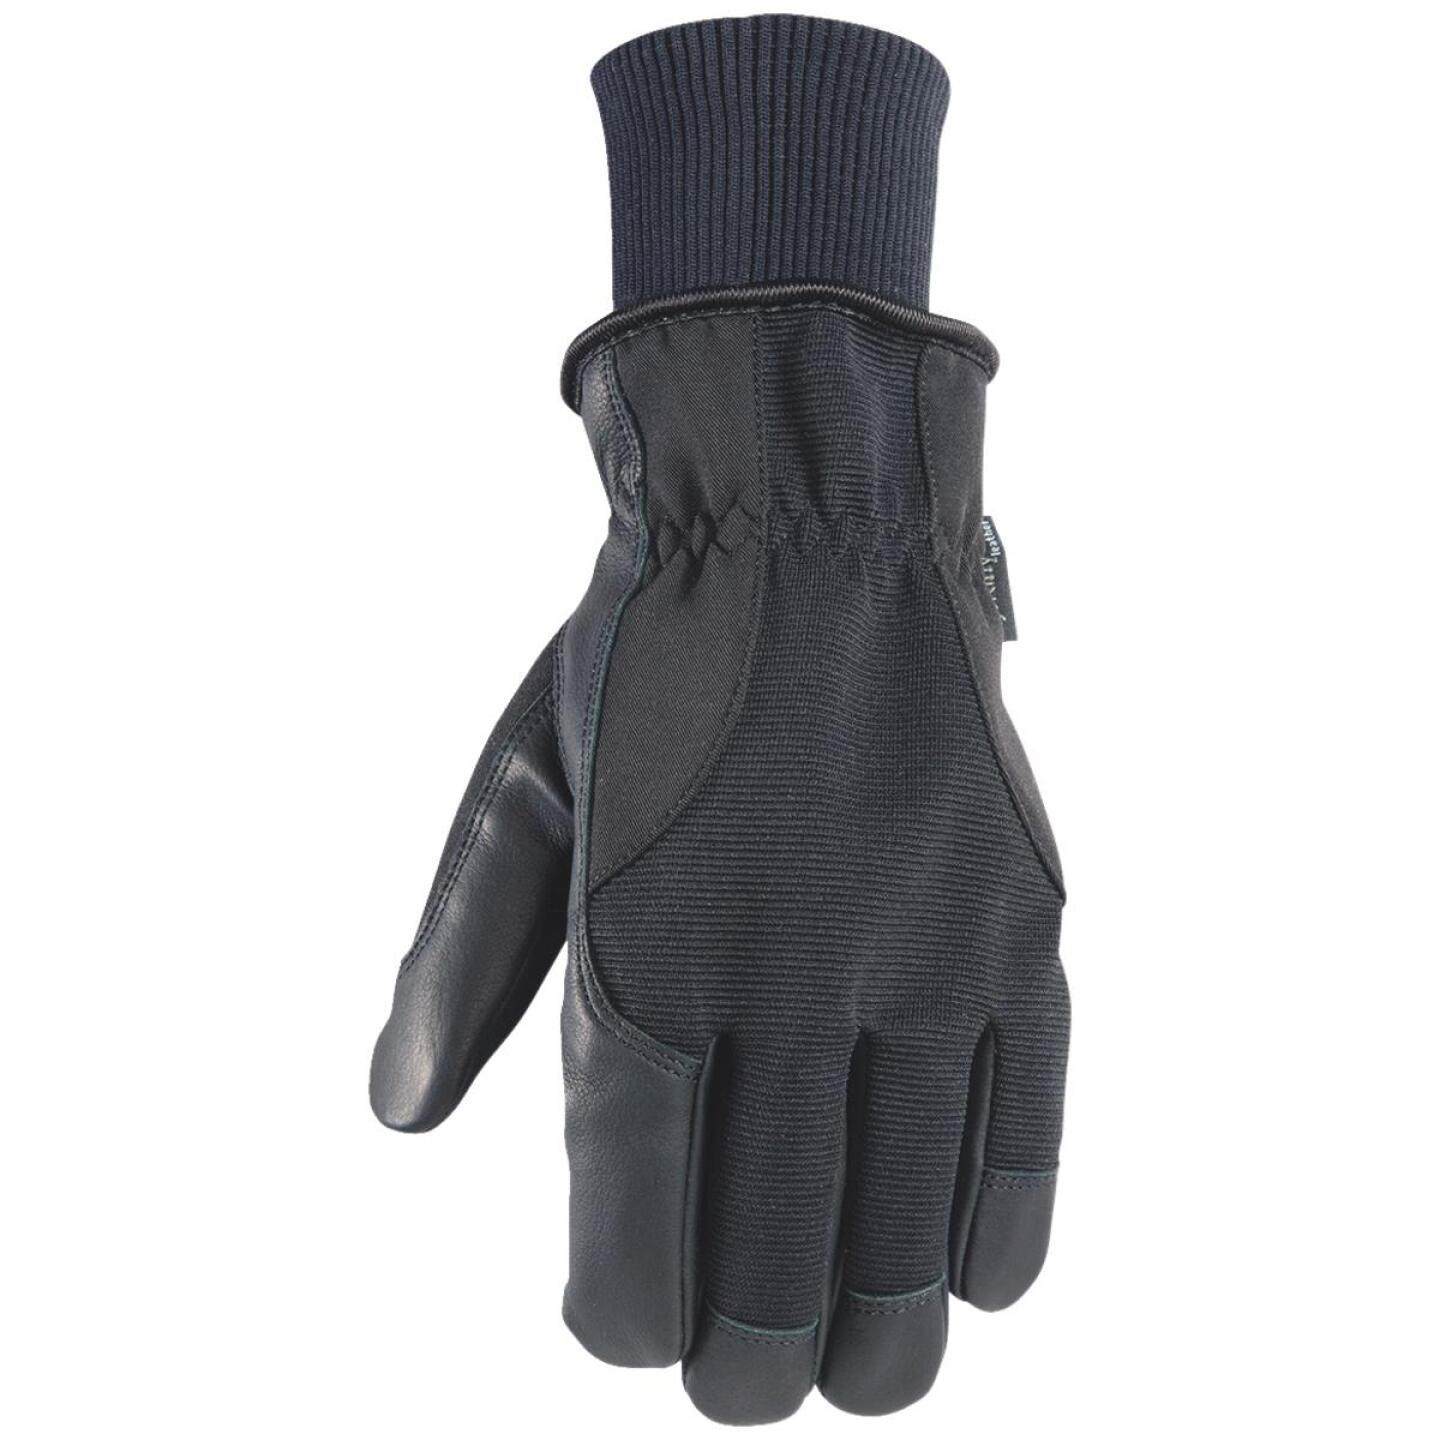 Wells Lamont HydraHyde Men's XL Grain Goatskin Black Insulated Work Glove Image 1